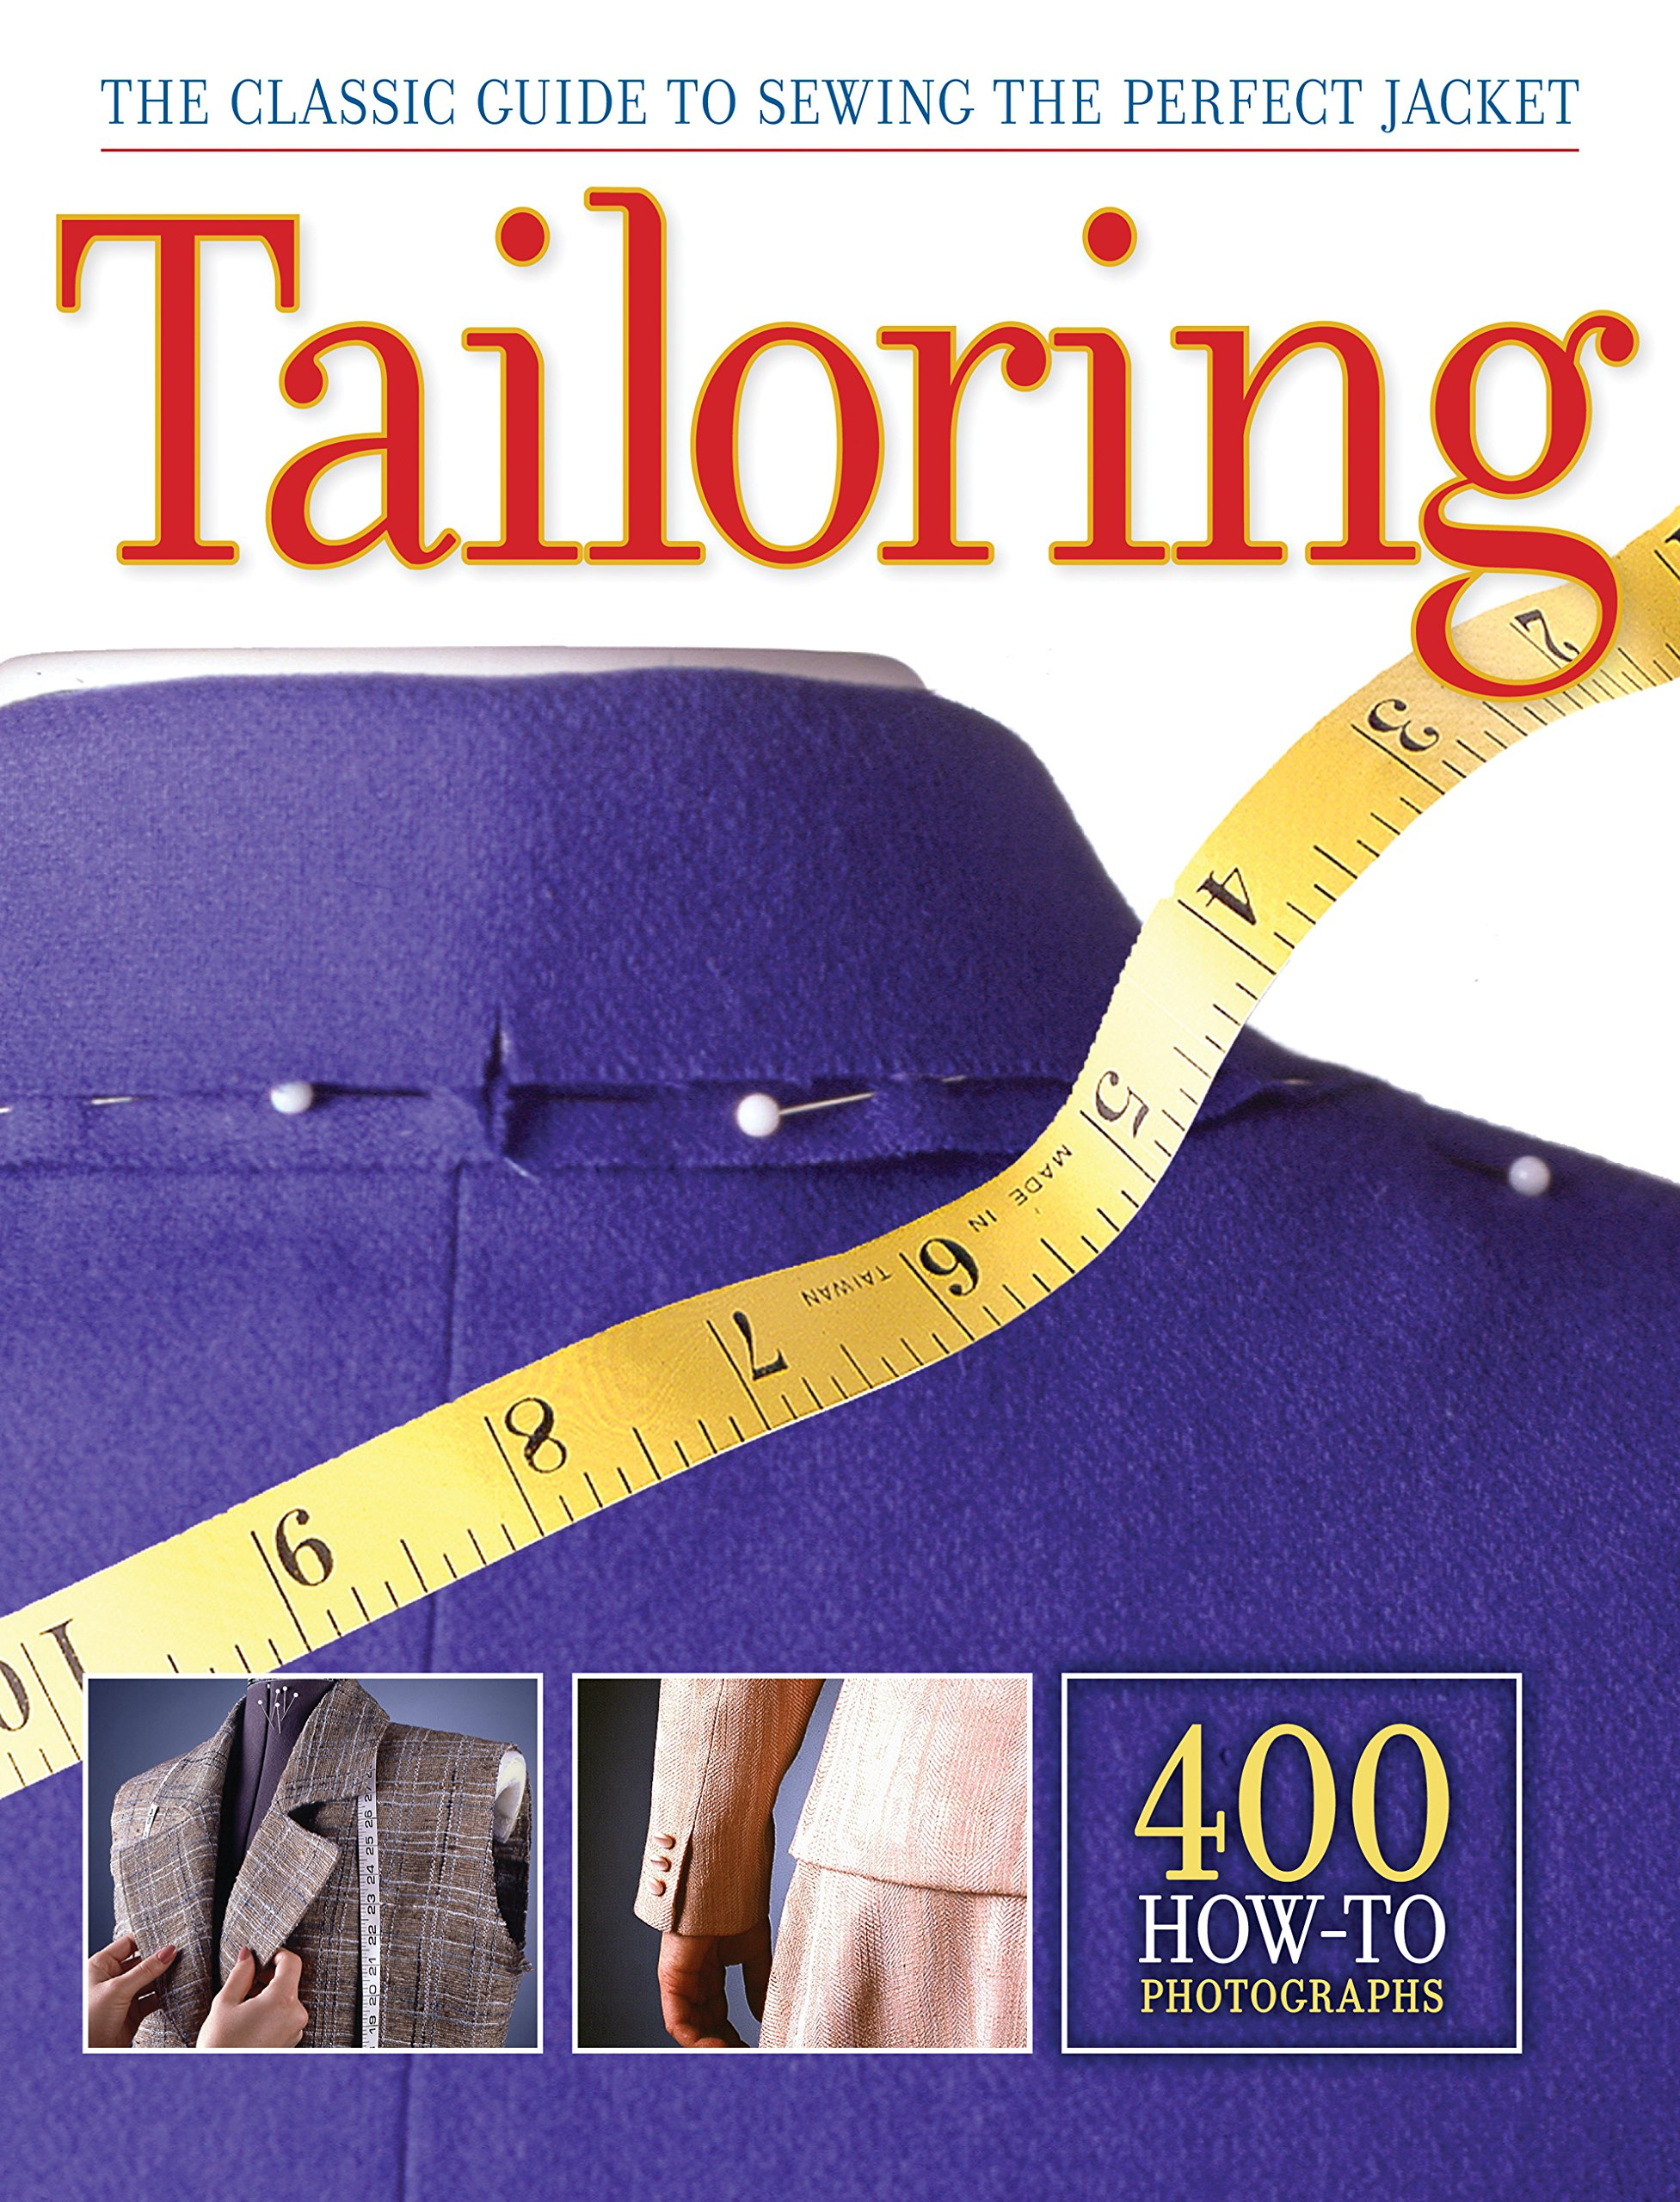 Tailoring: The Classic Guide to Sewing the Perfect Jacket Paperback – May 1, 2011 Editors of CPi Quarry Books 1589236092 Fashion